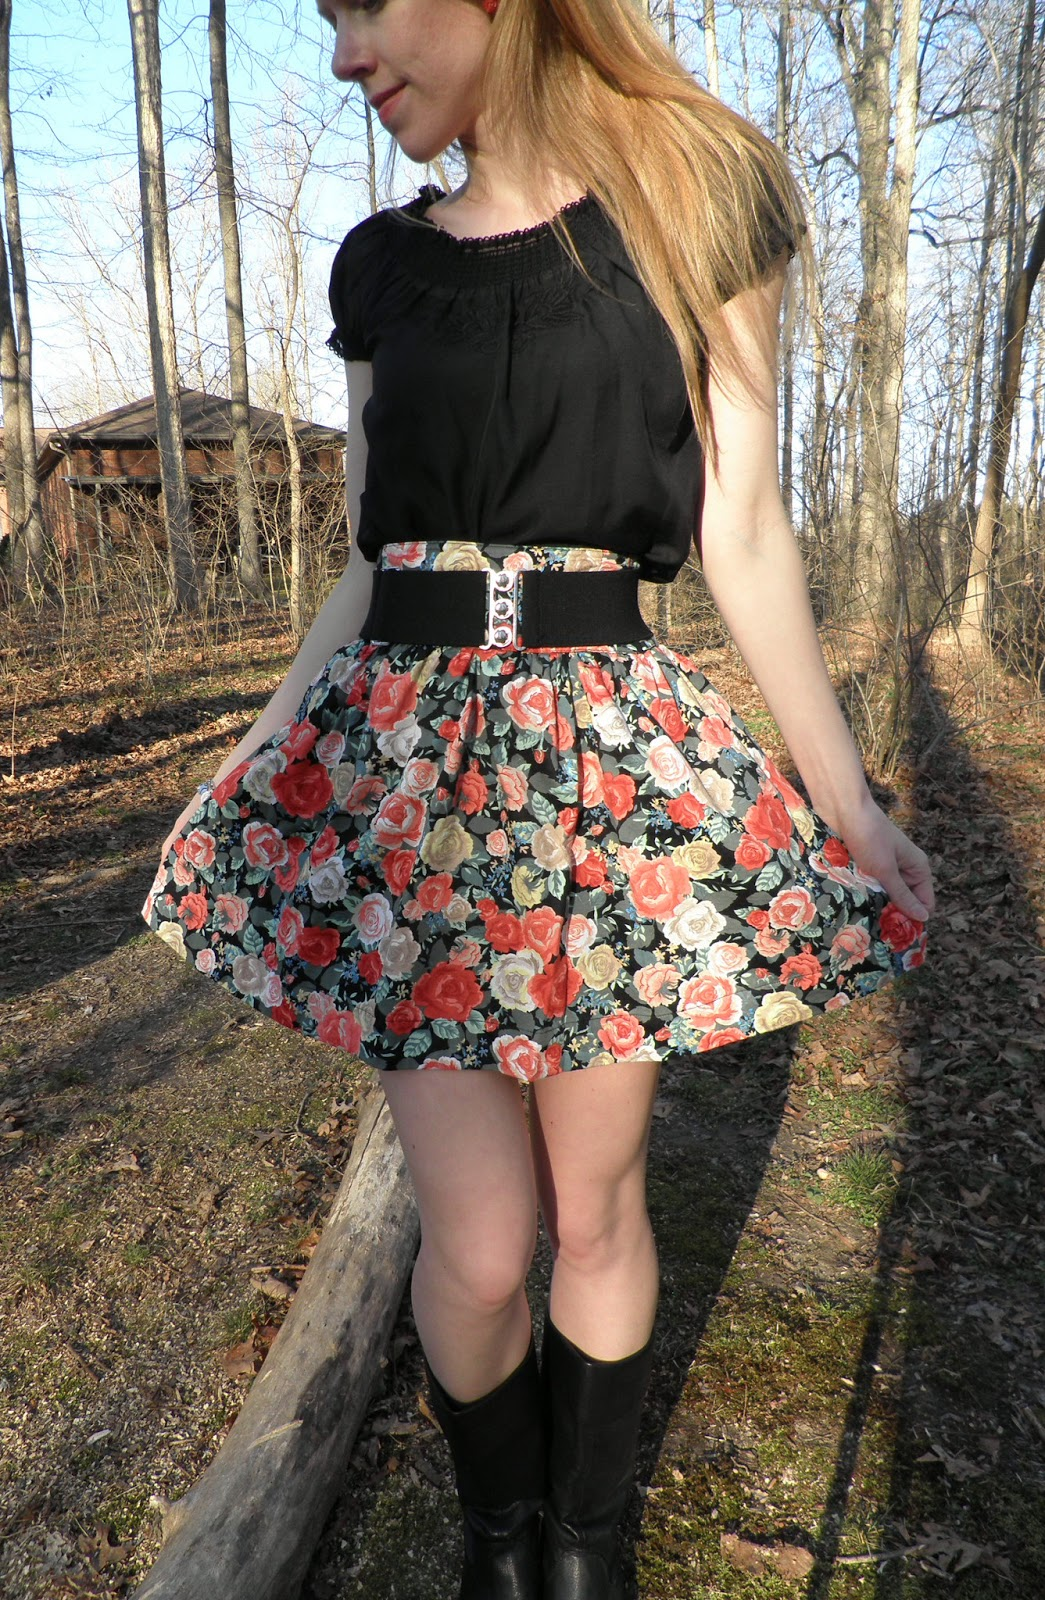 High Waisted Skirts Outfits Ideas 2014-2015 | Fashion Trends 2016-2017